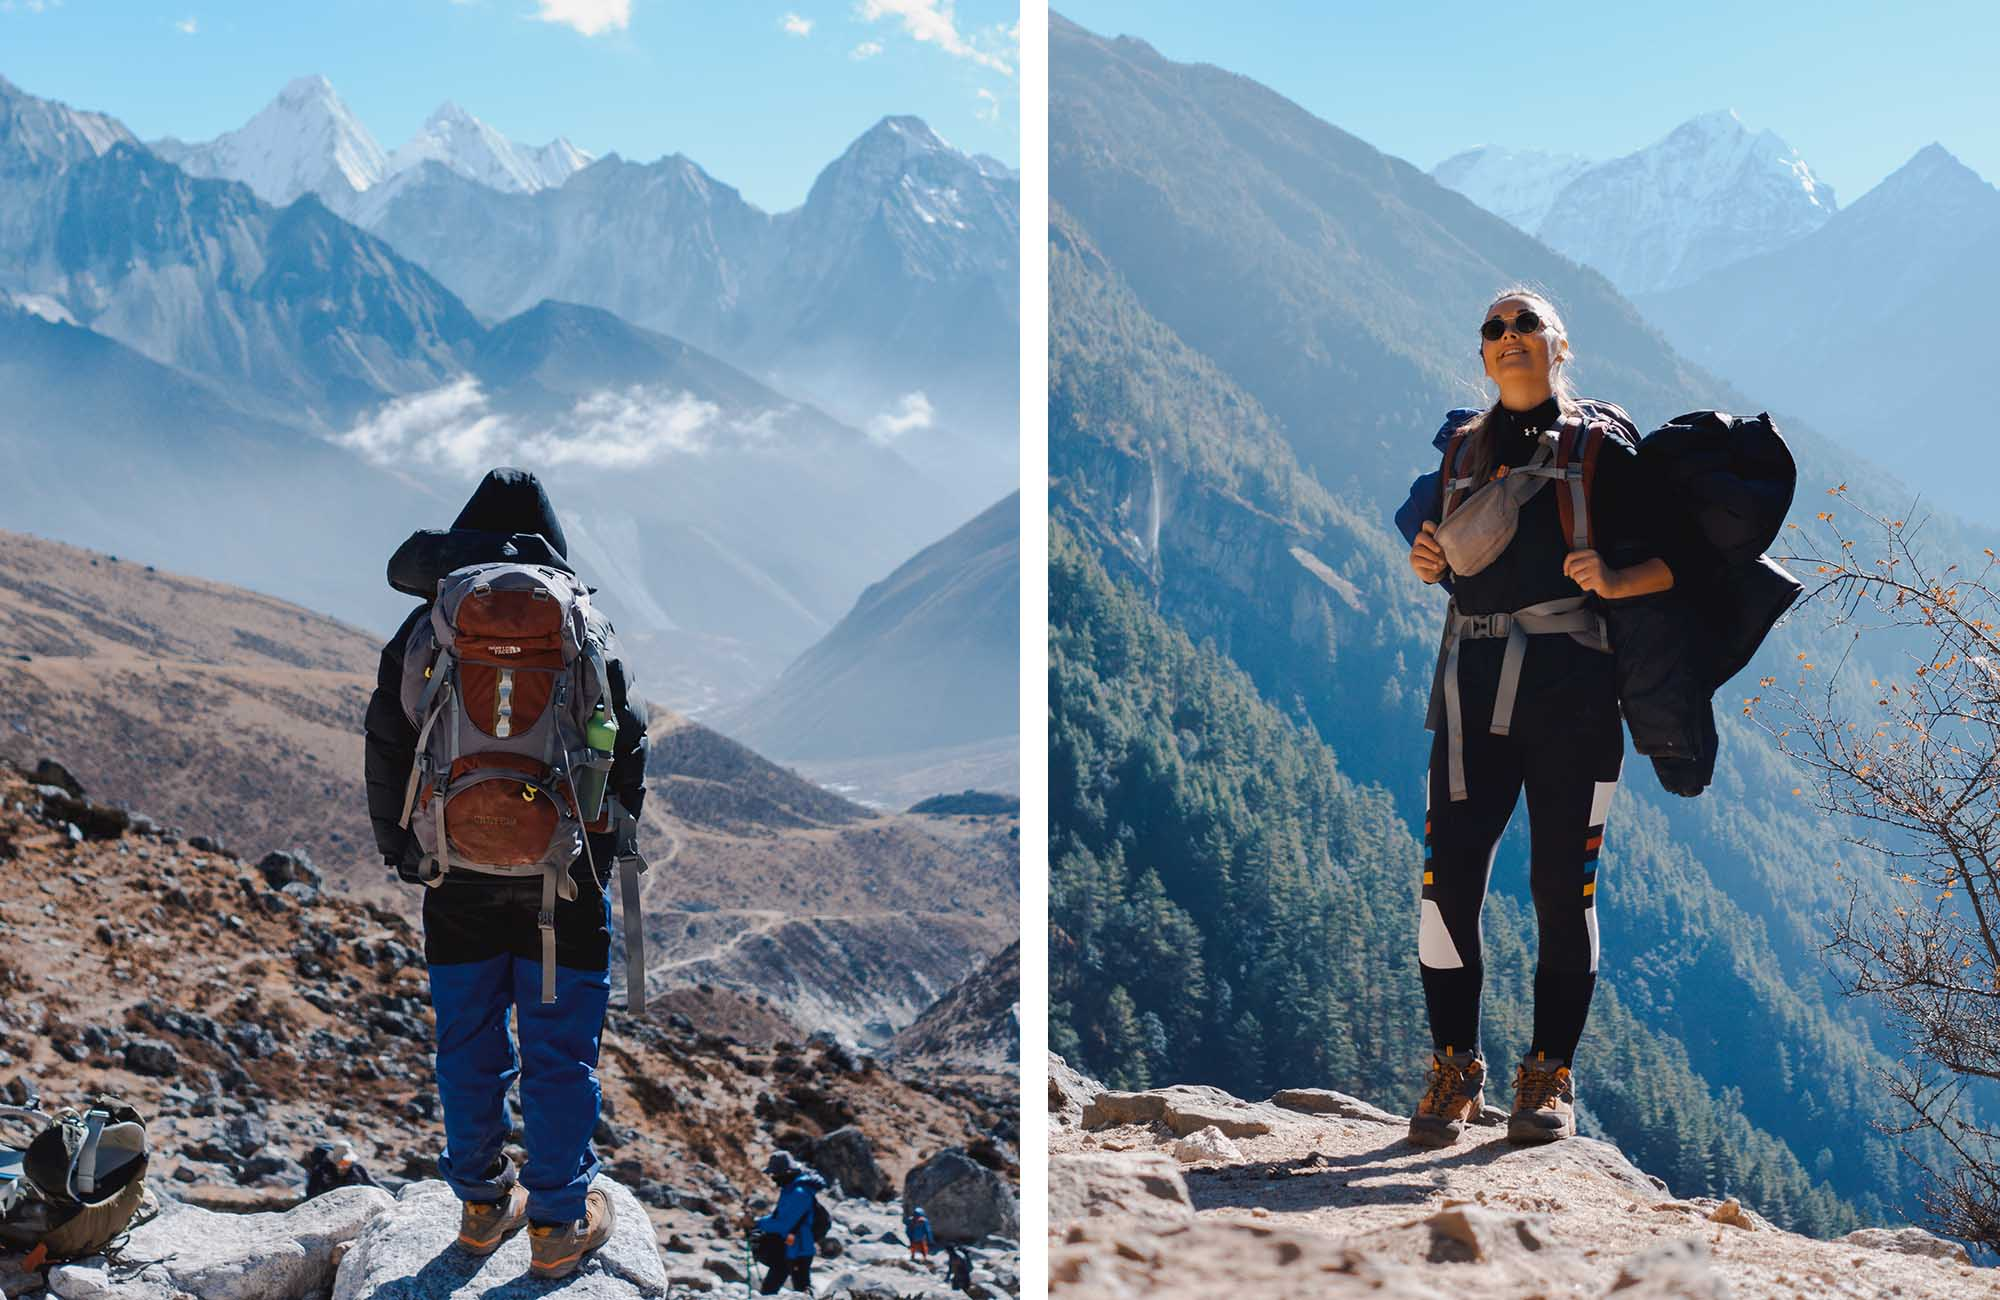 These backpacks fit all our clothes, gear, sleeping bags and accessories for the trek.